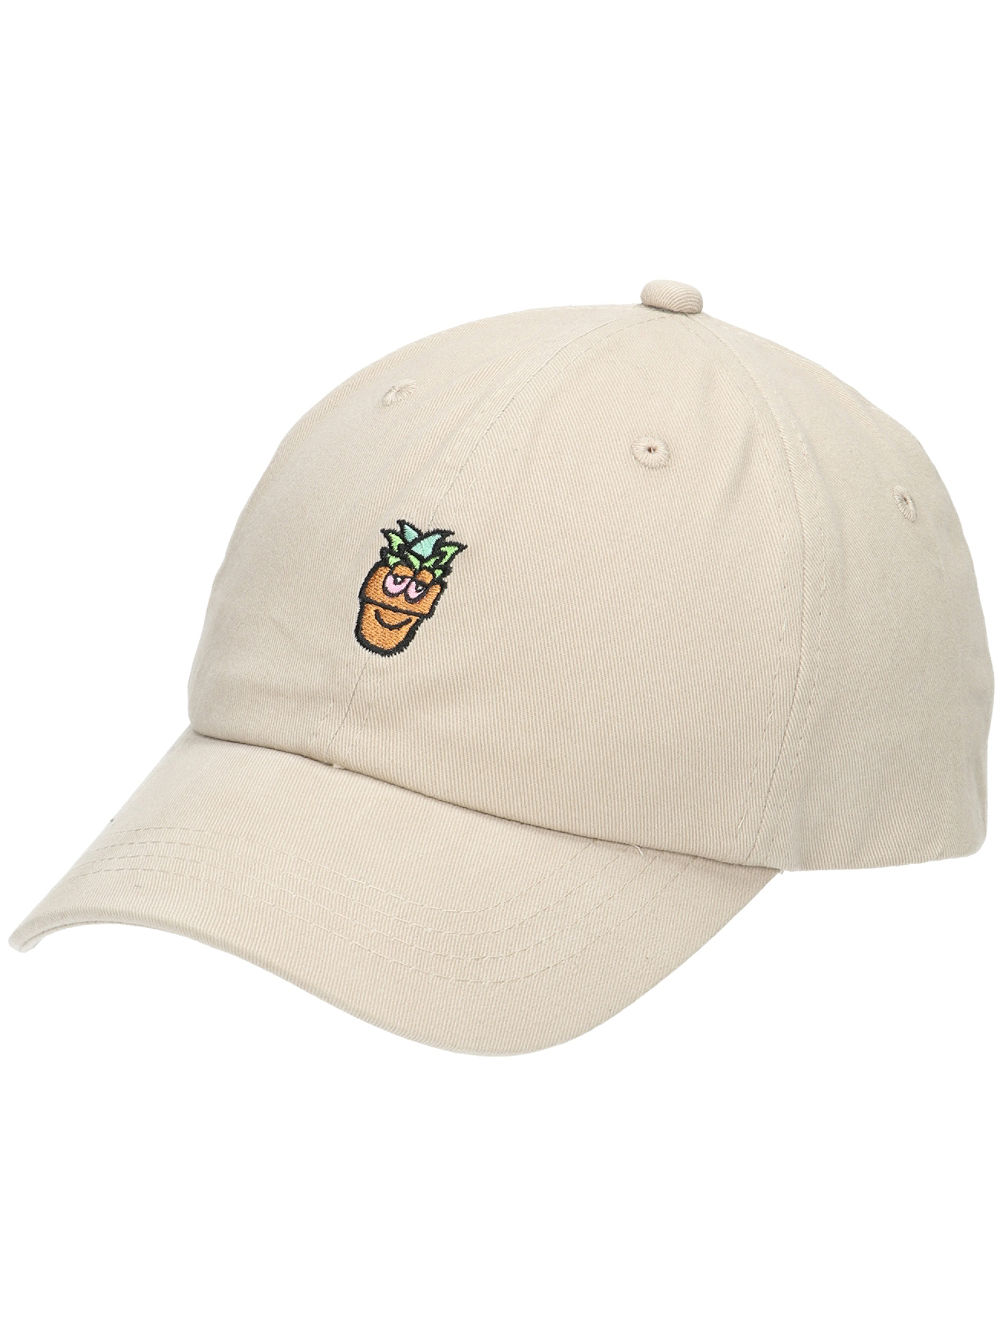 Potted Baseball Cap